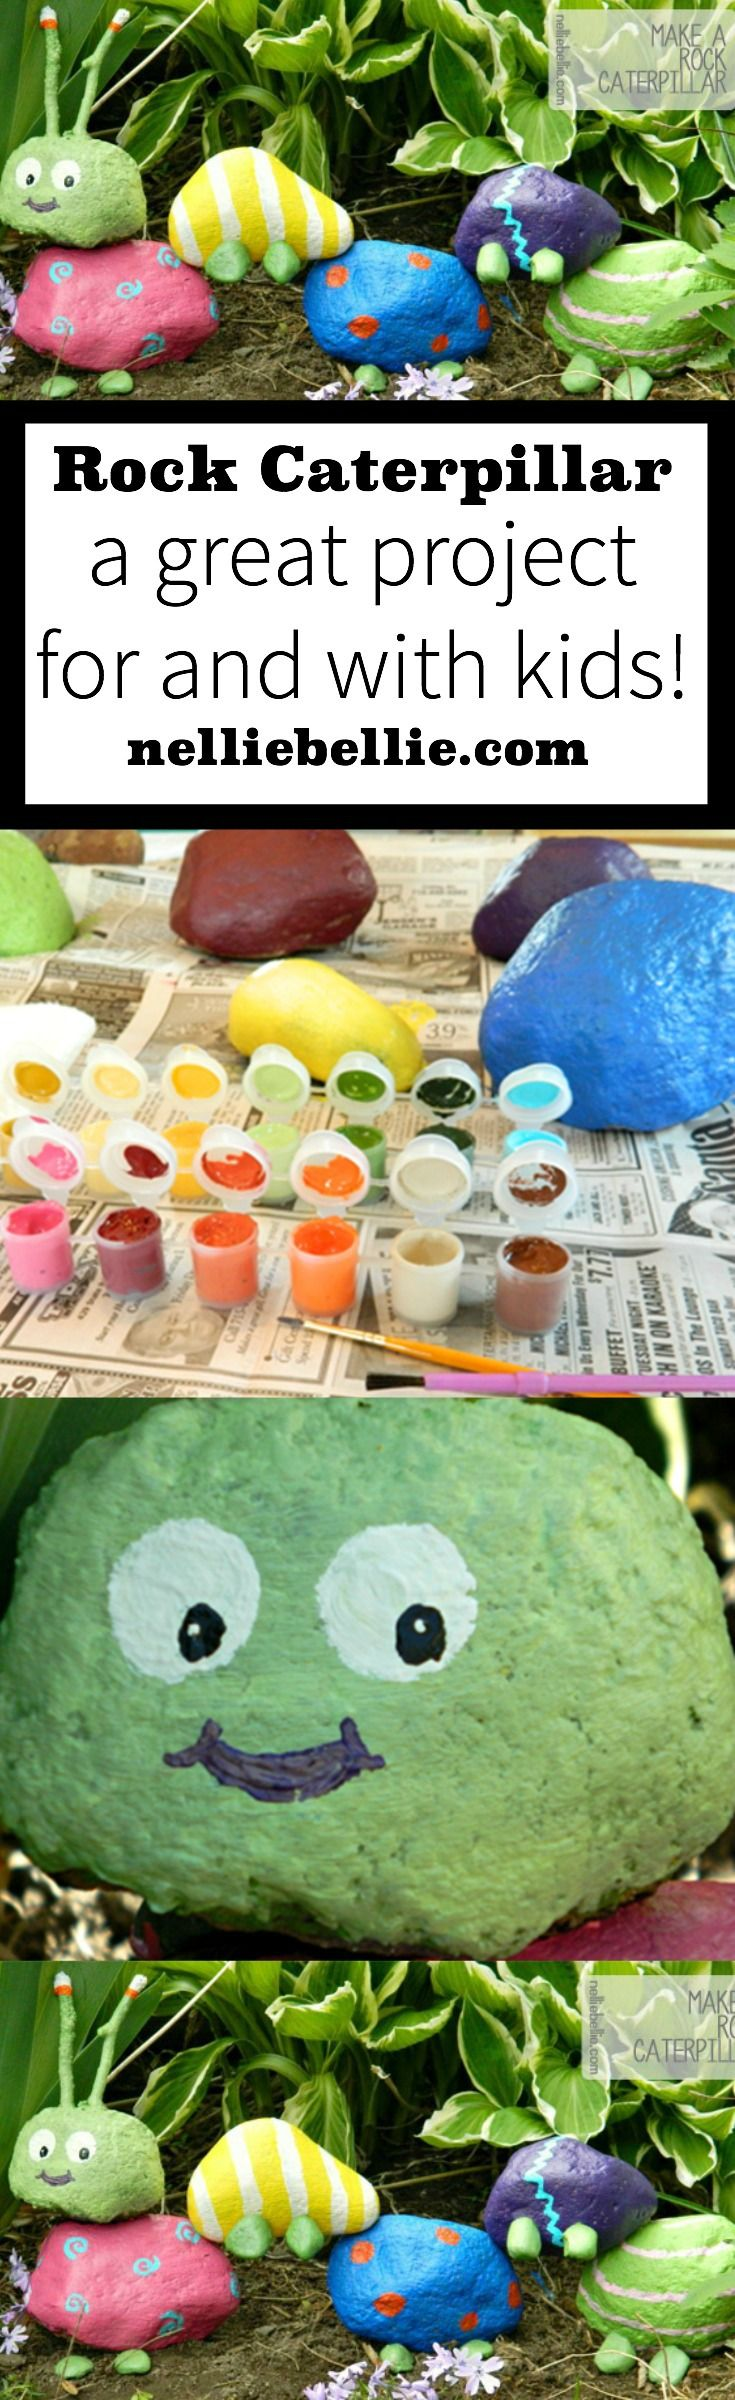 A fun garden craft with kids! Use rocks and paint to create a caterpillar!